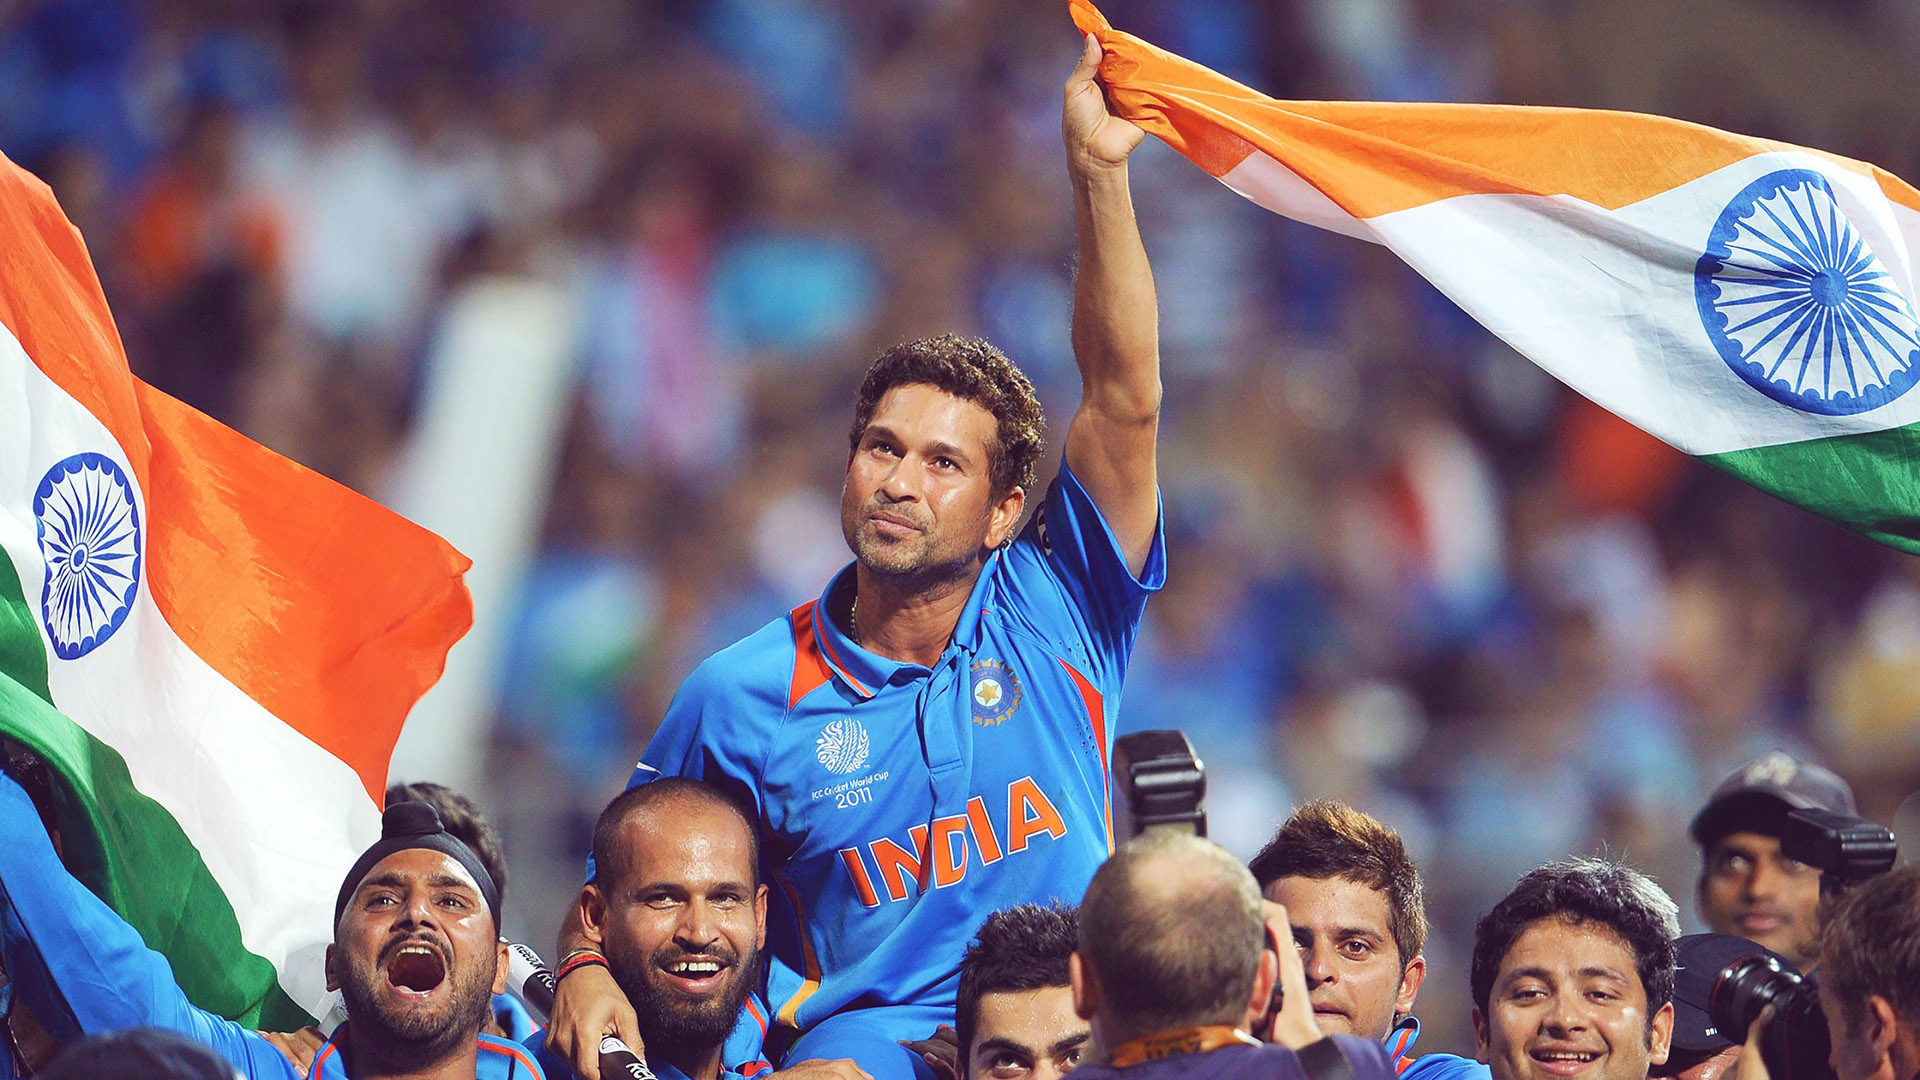 Sachin Tendulkar Celebrating 2011 Cricket World Cup India with Indian Flag